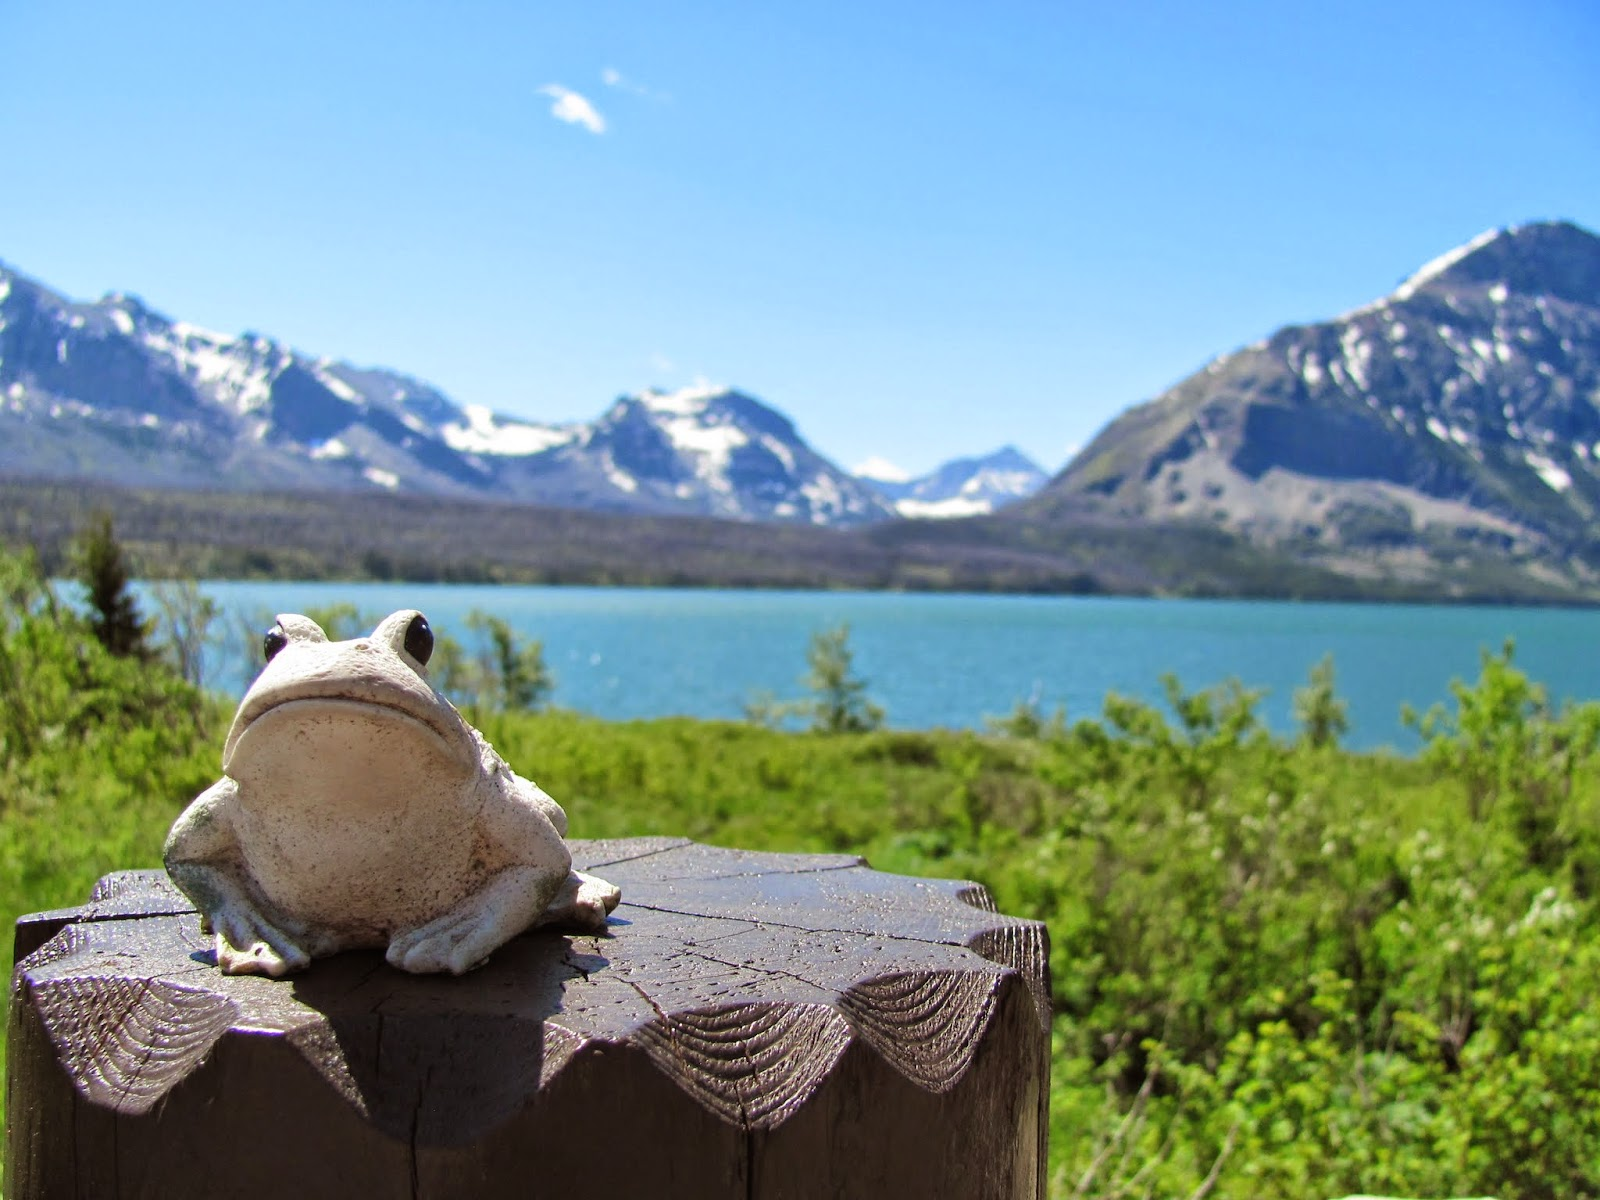 Frog poses on a fencepost near St. Mary Lake at Glacier National Park in Montana